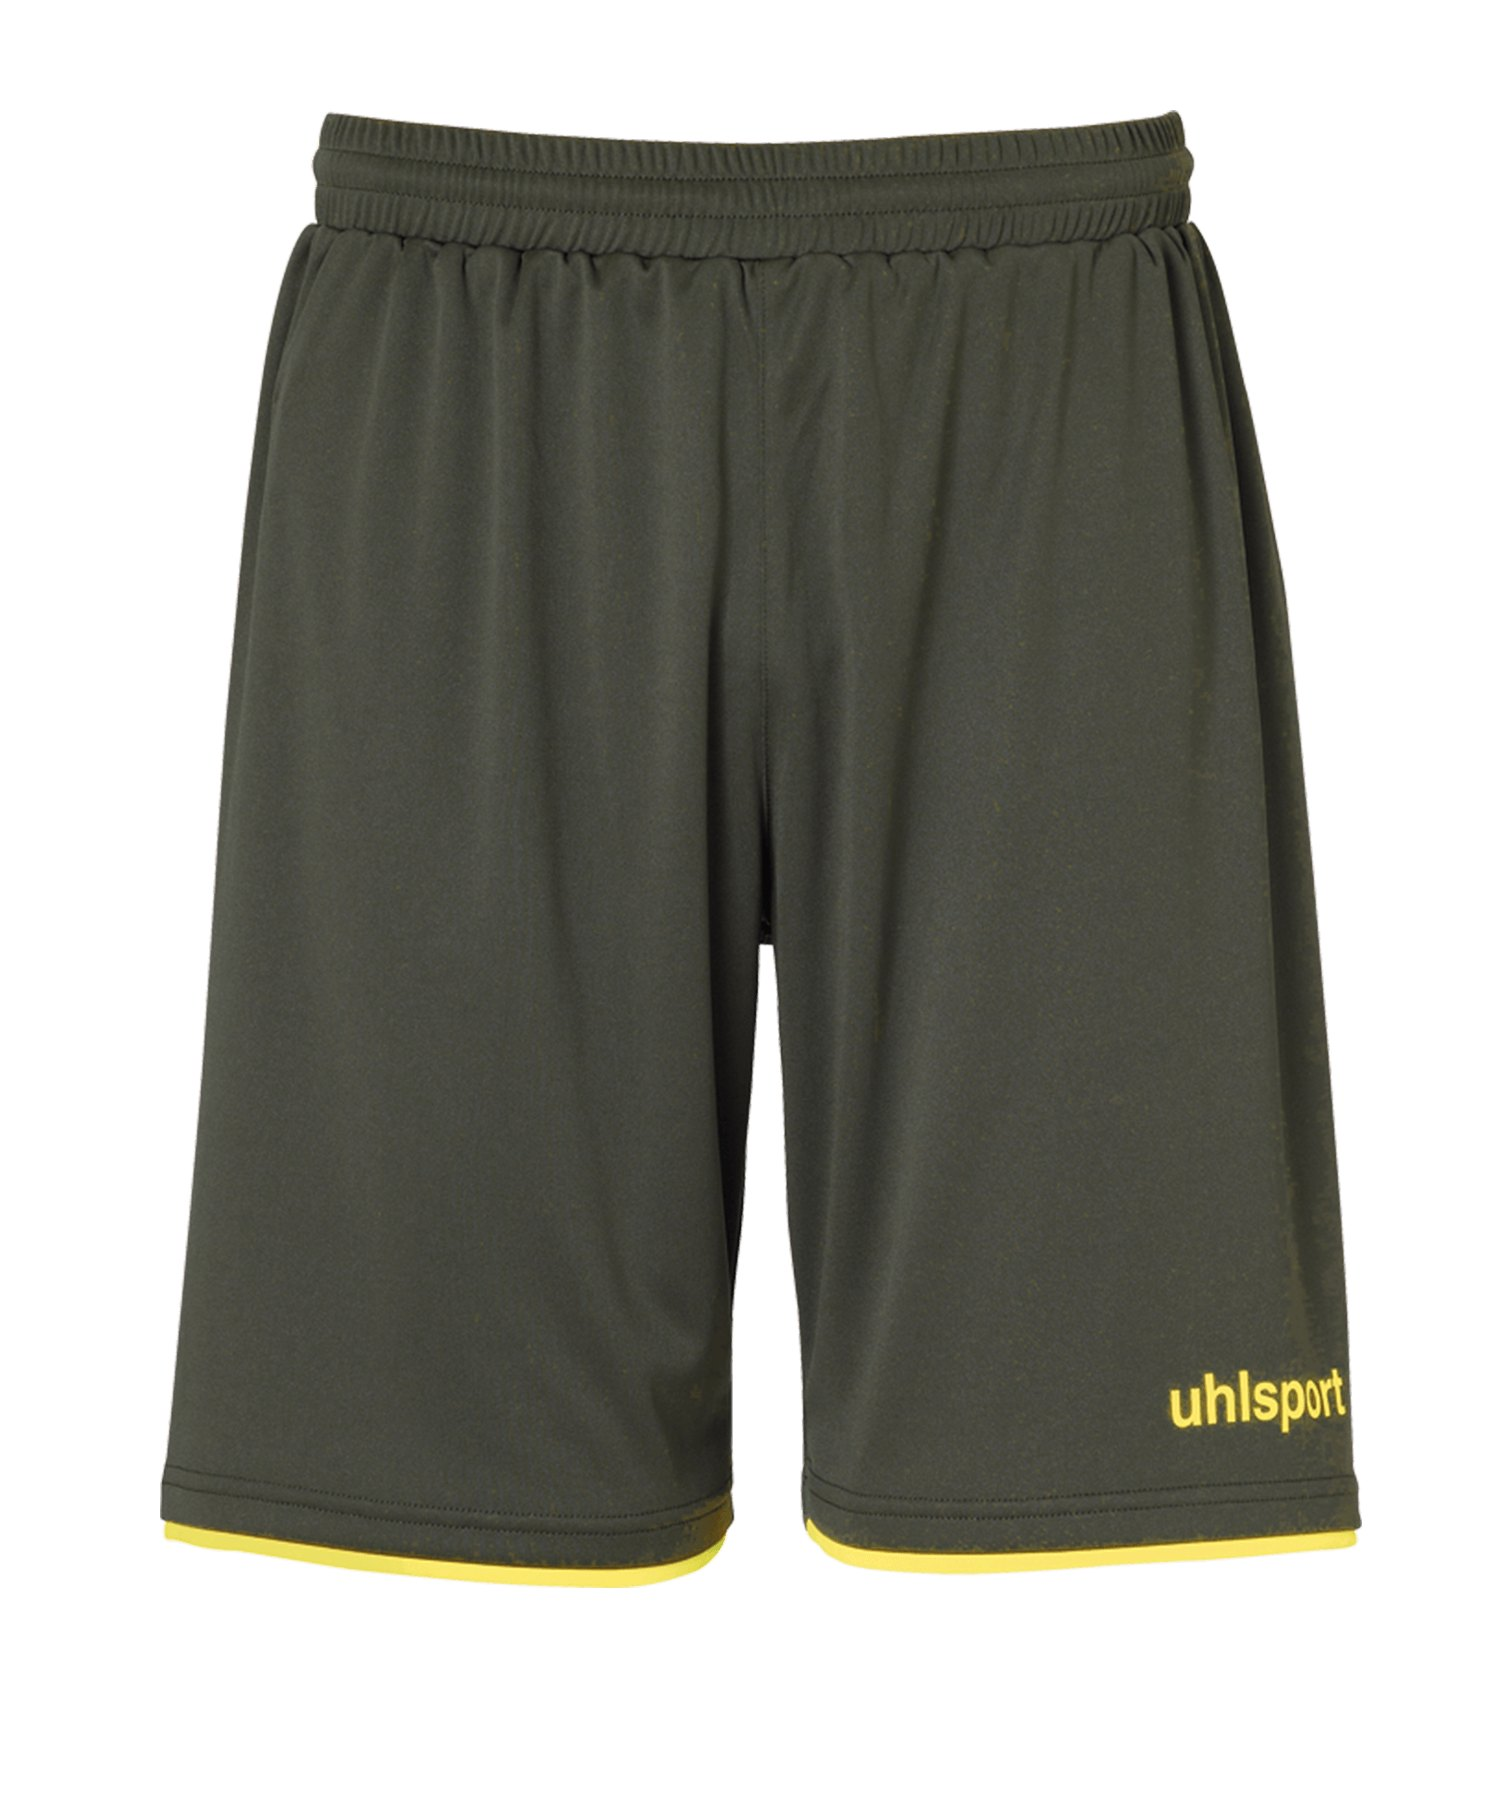 Uhlsport Club Short Kids Grün Gelb F14 - gruen